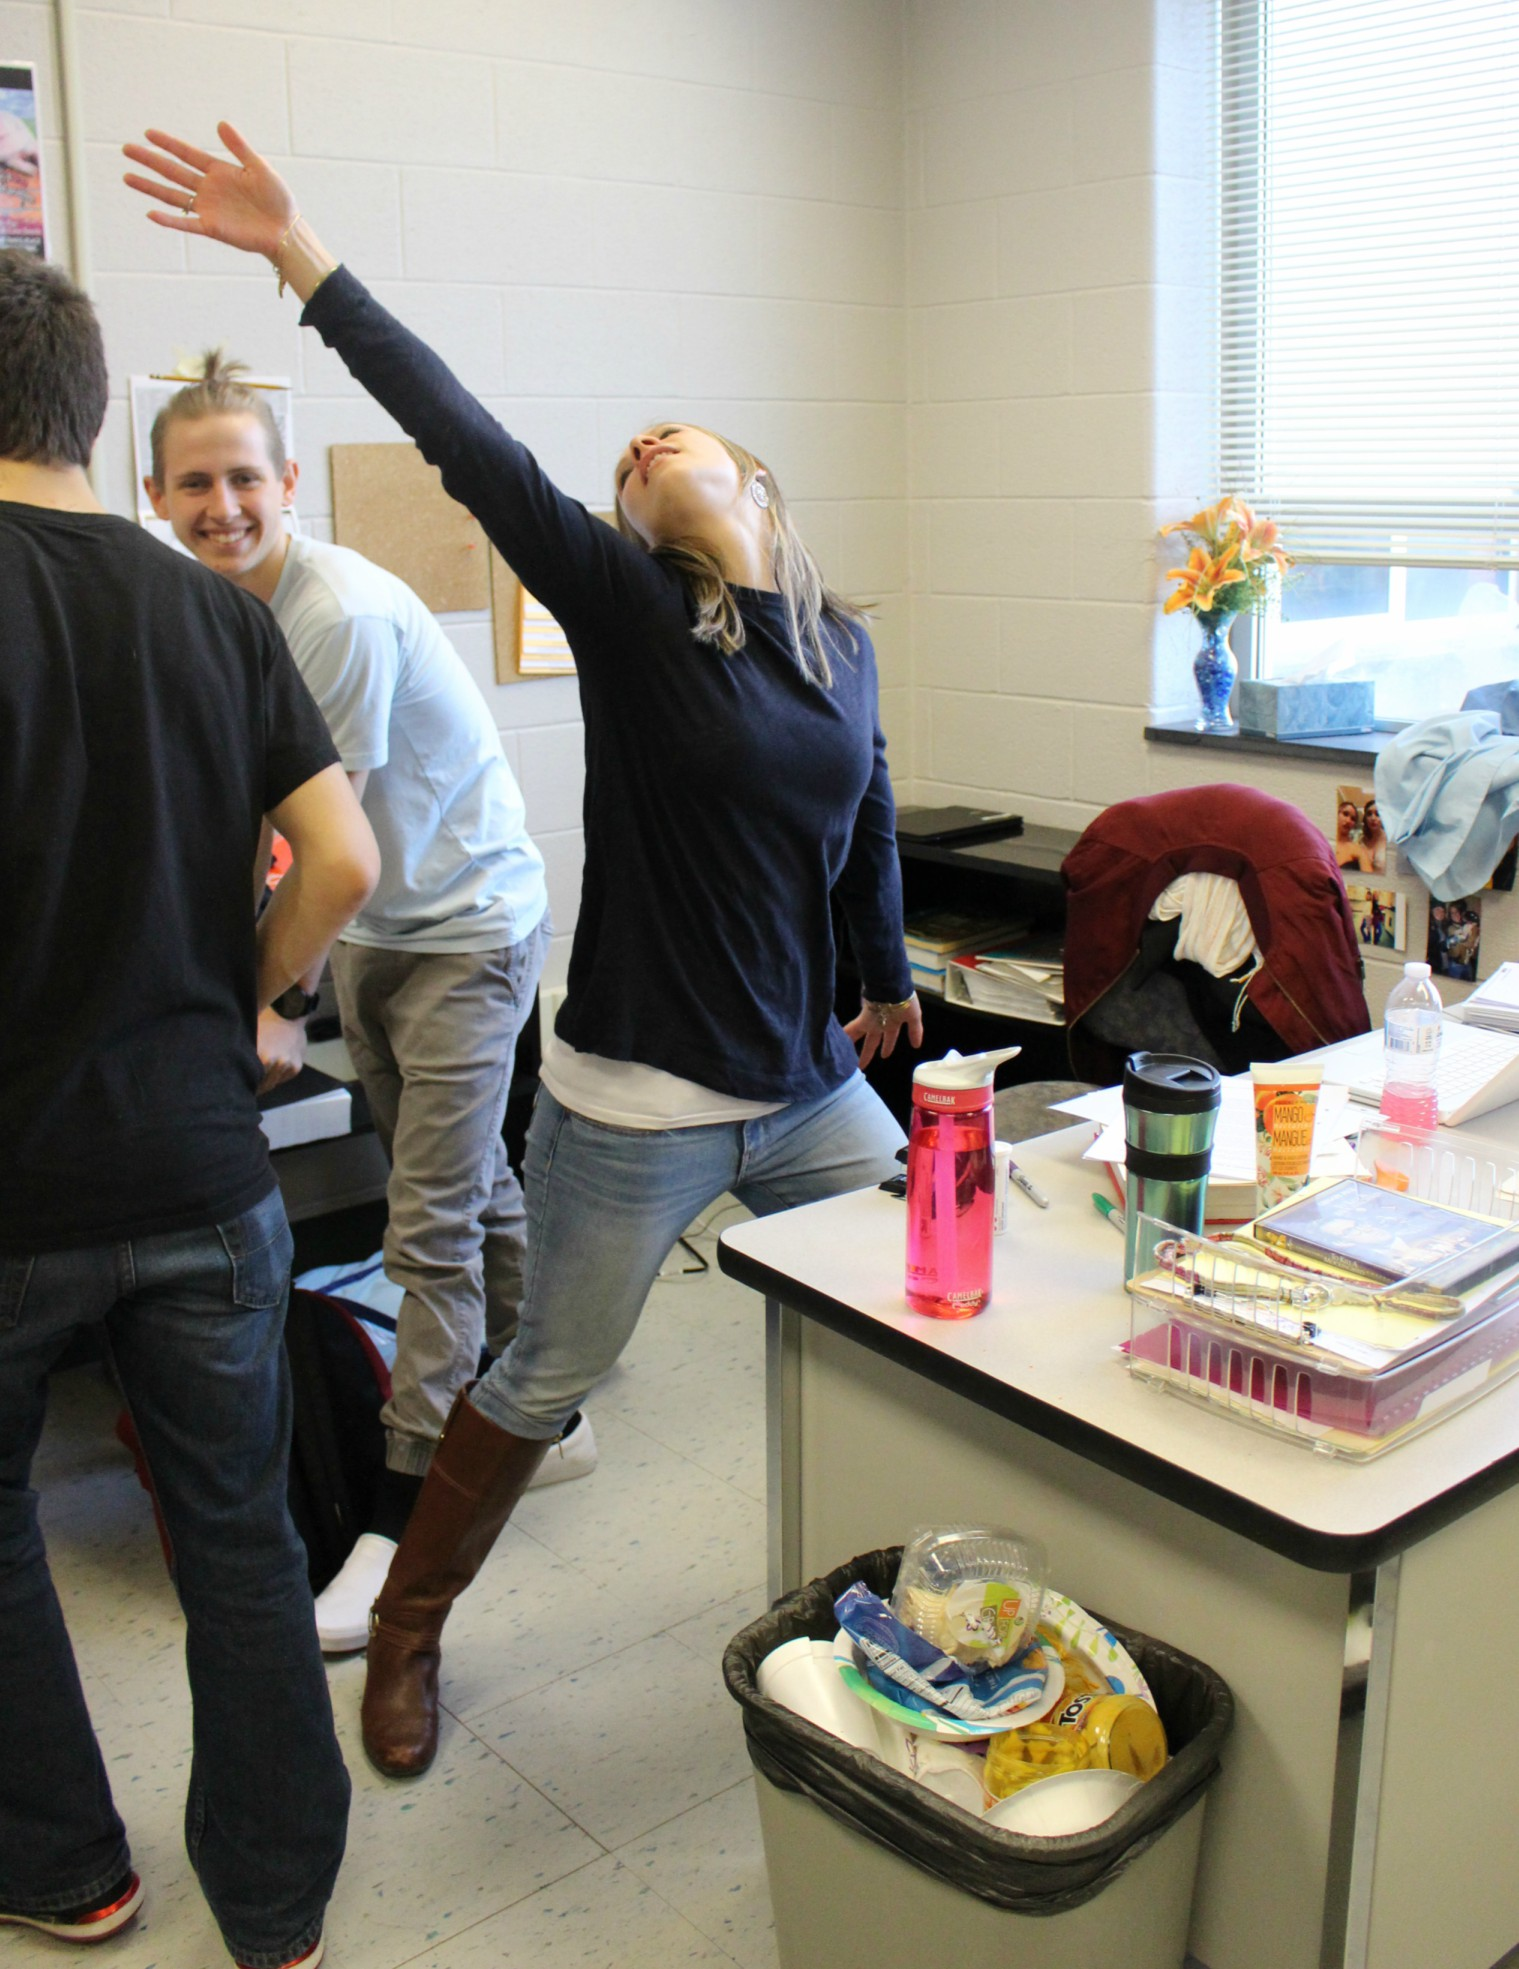 Ms. Smith being her outgoing self